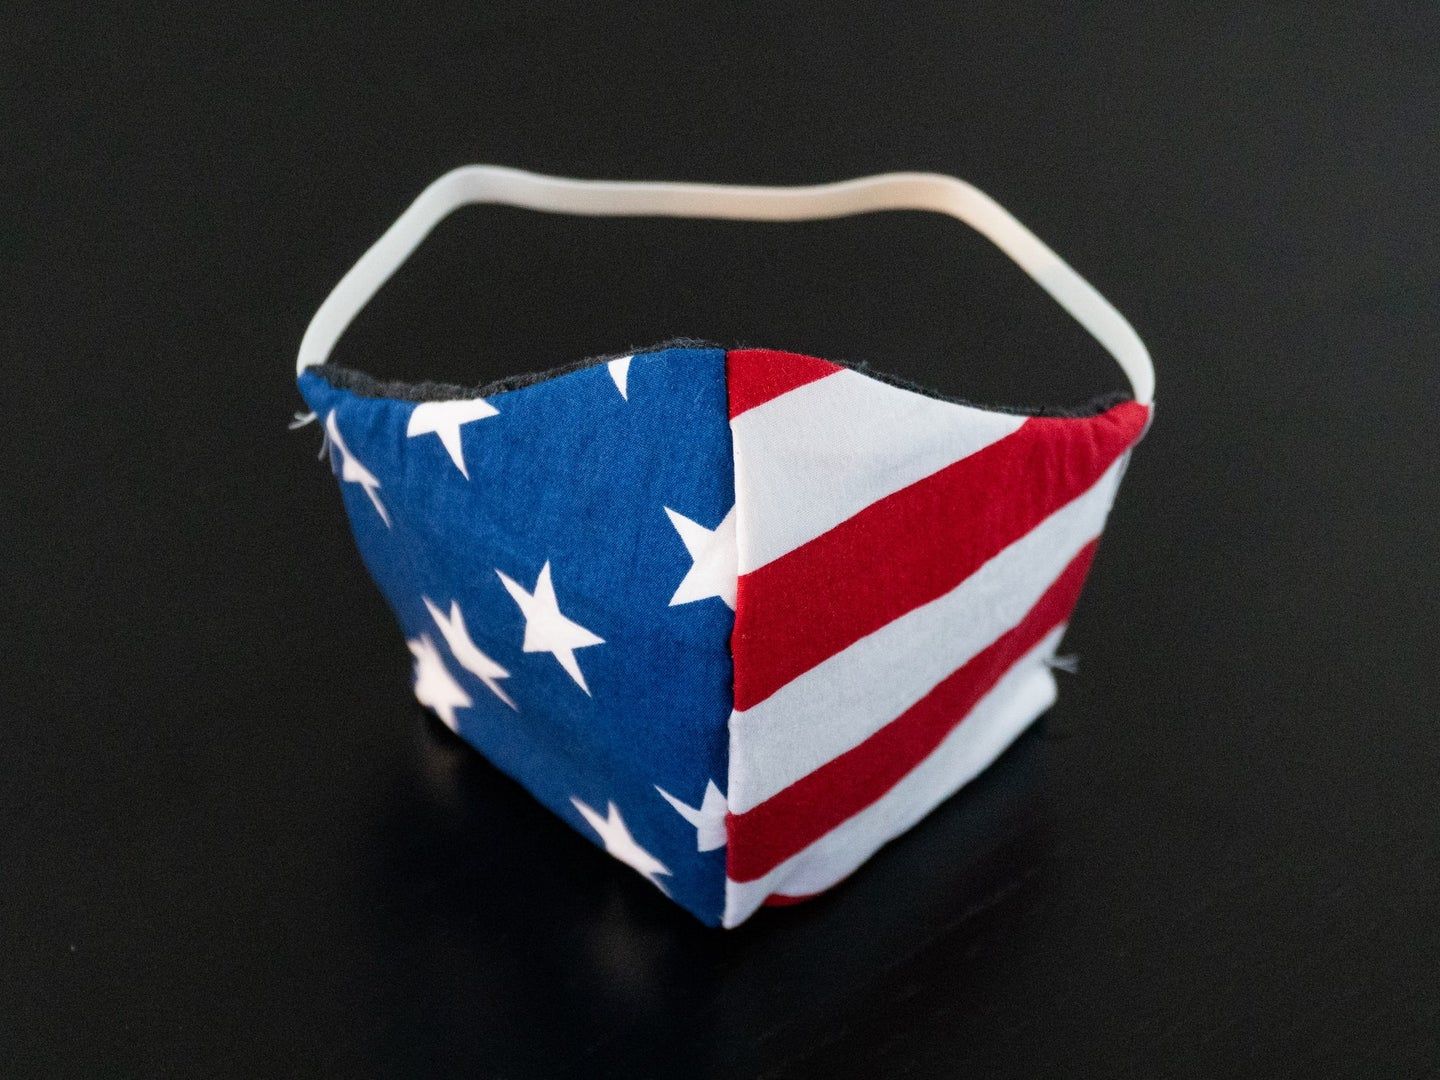 an American-flag patterned face mask on a black background.